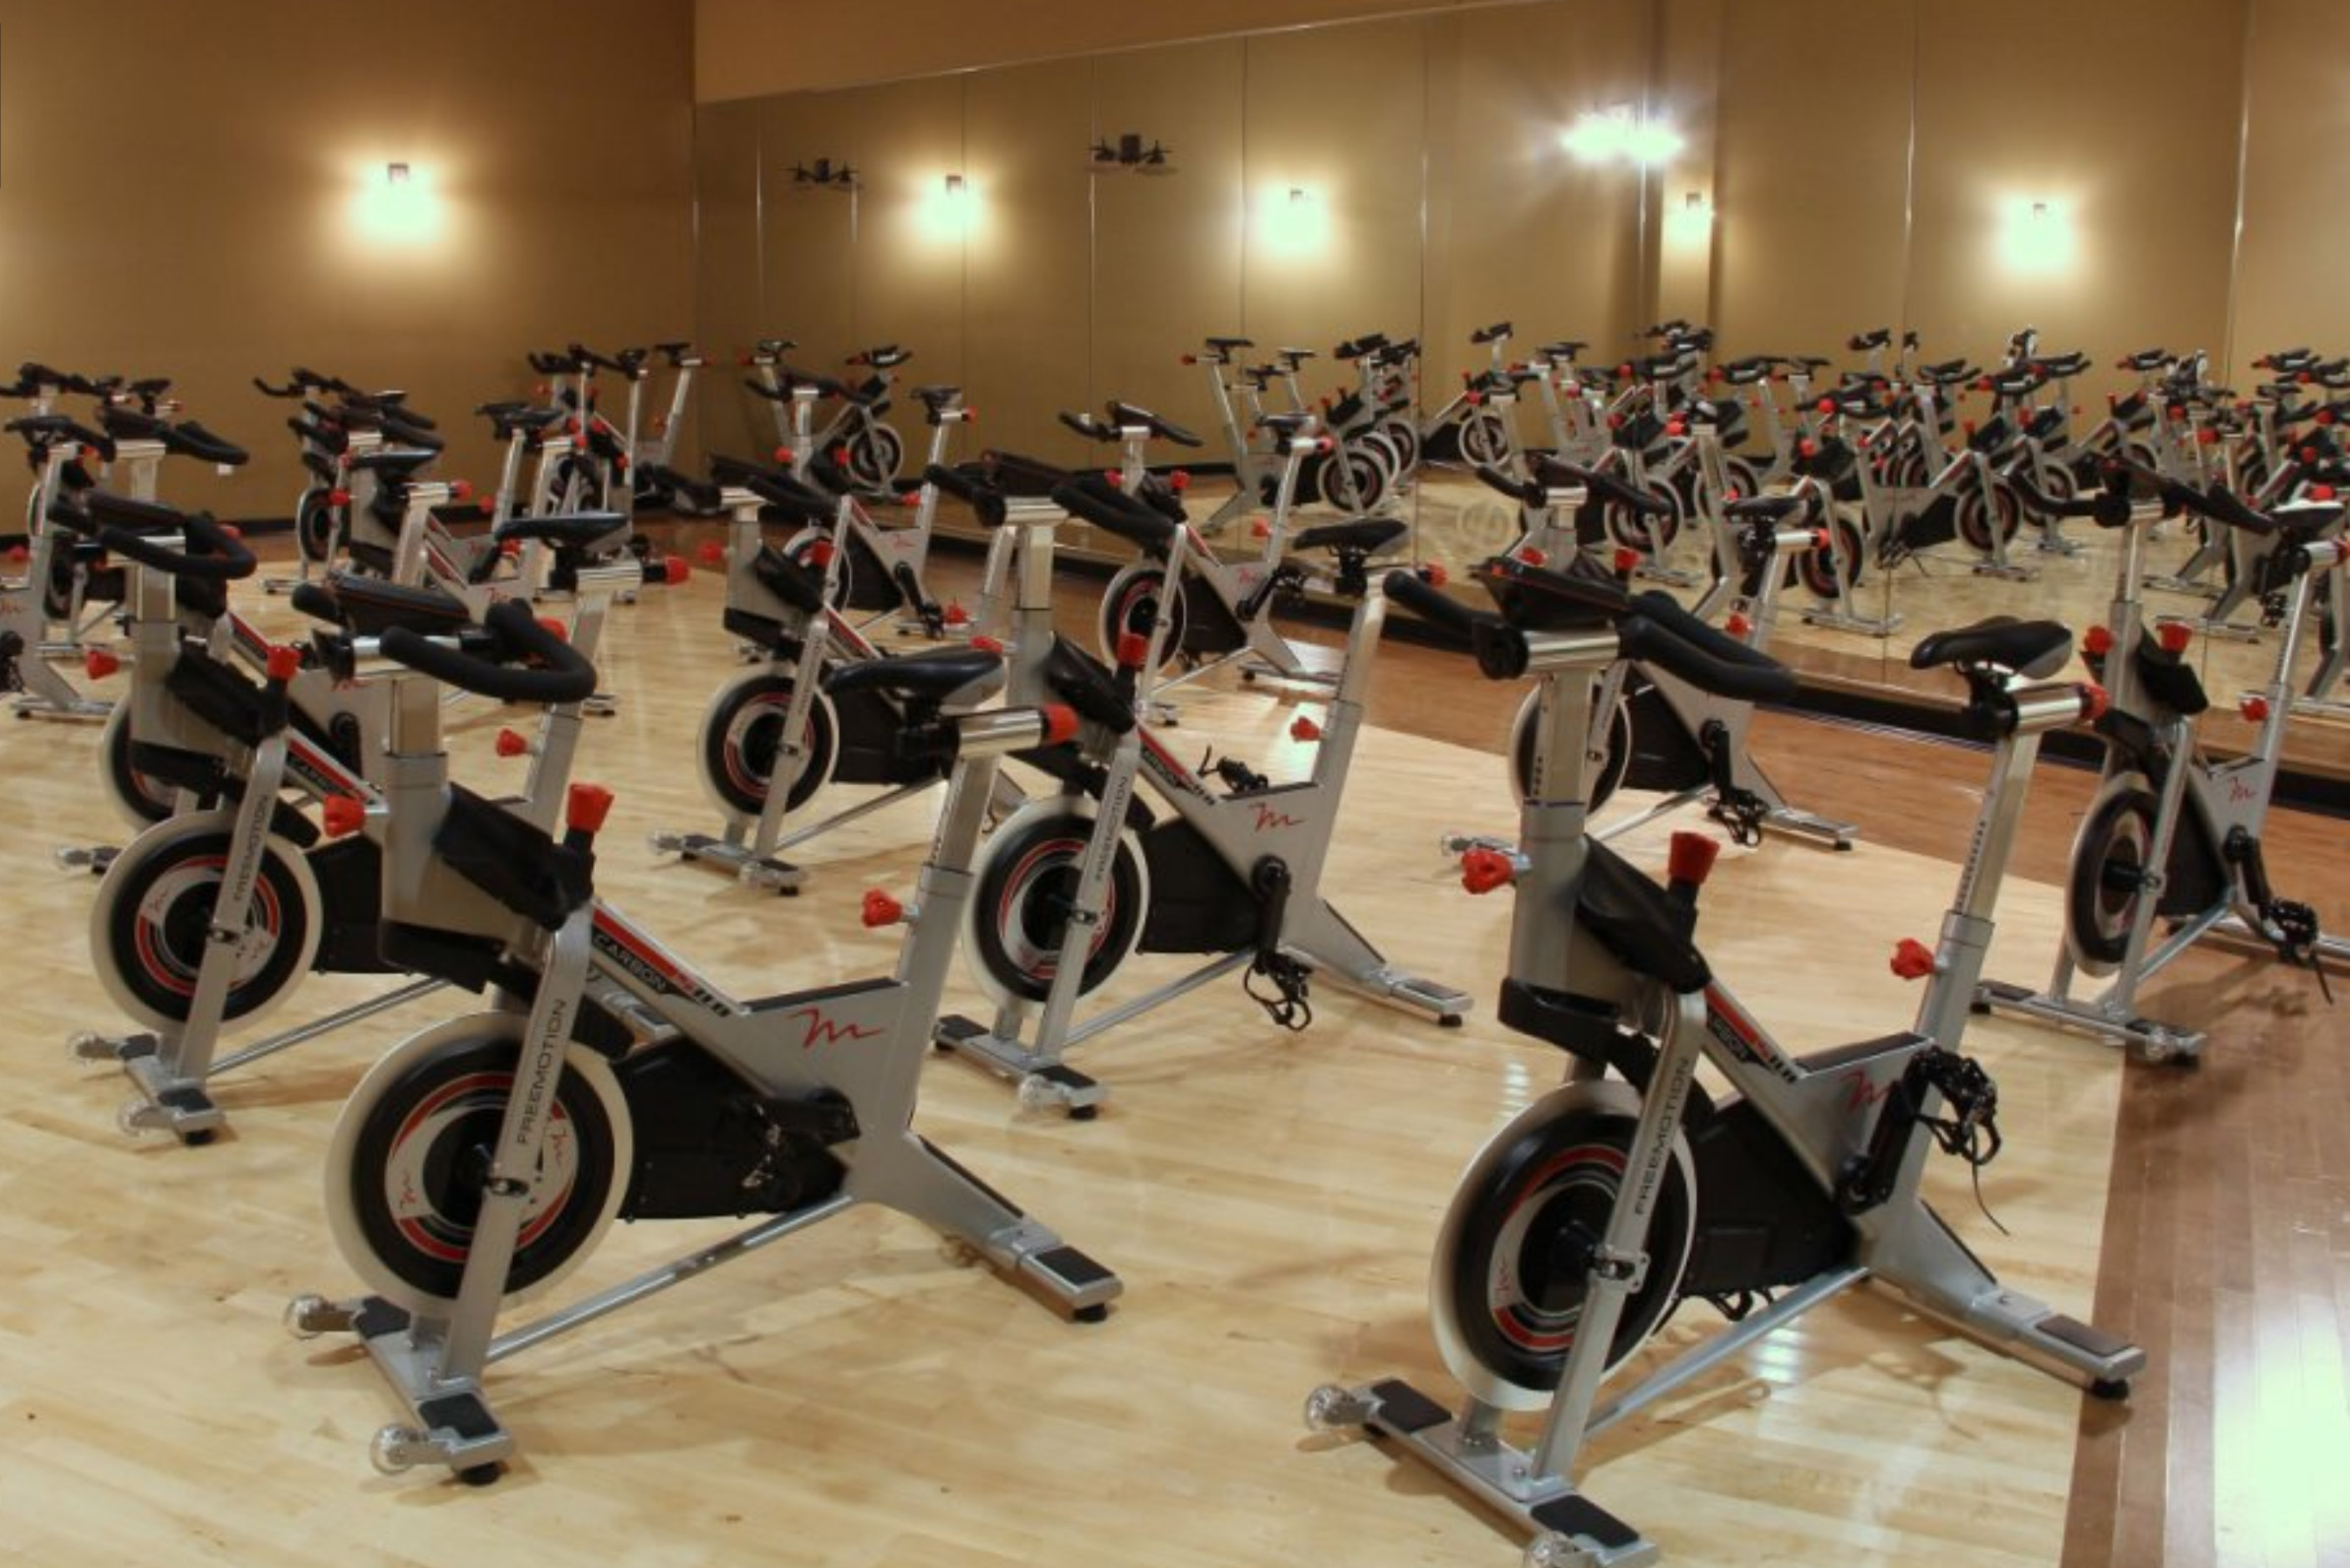 Prestige Fitness Arvada has many aerobic classes, including spin class.